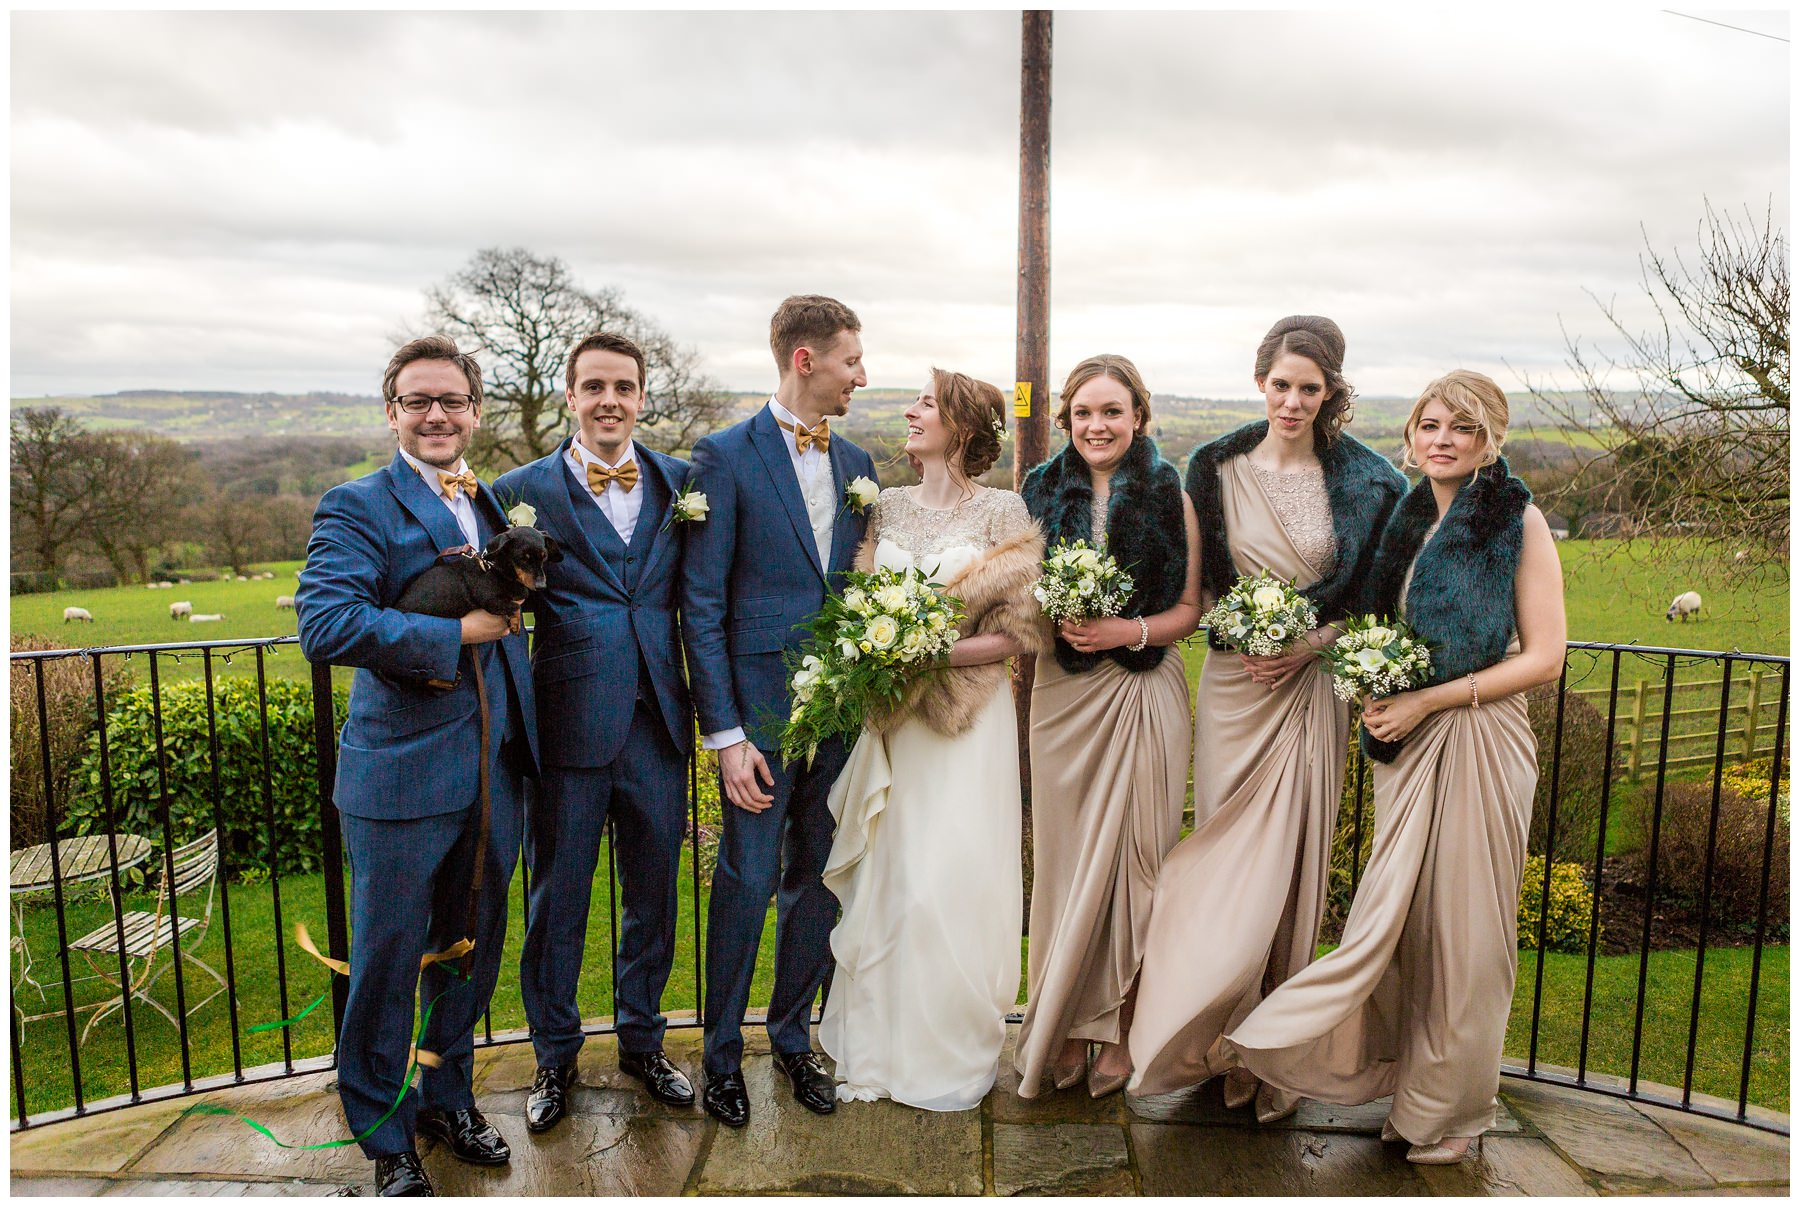 bride, groom, groomsmen and bridesmaids in gardens